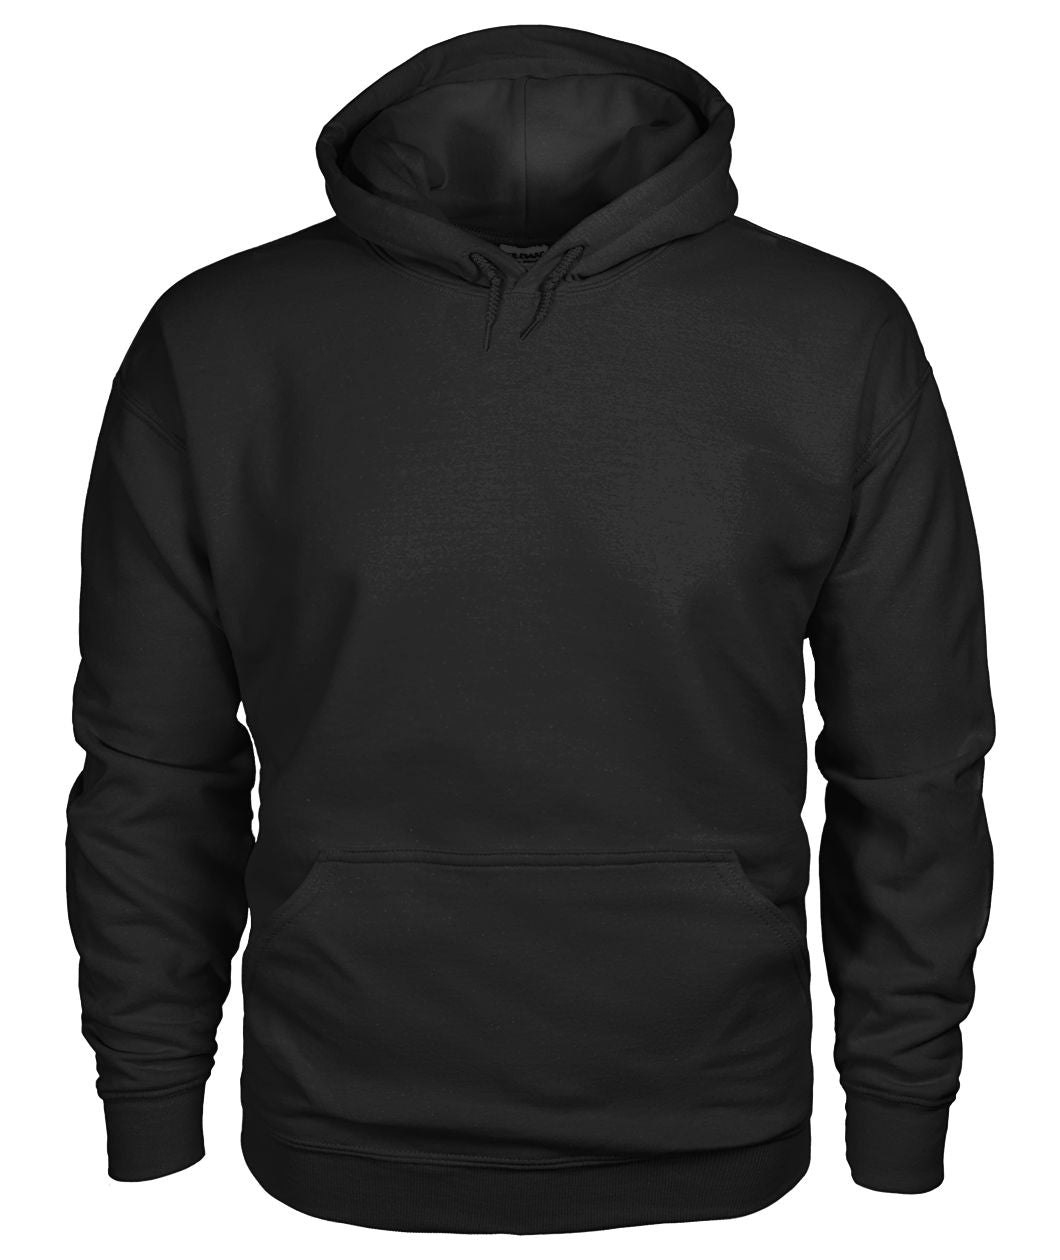 It's Because I'm Black Isn't It Hoodie Unisex Hoodie - Image on Back